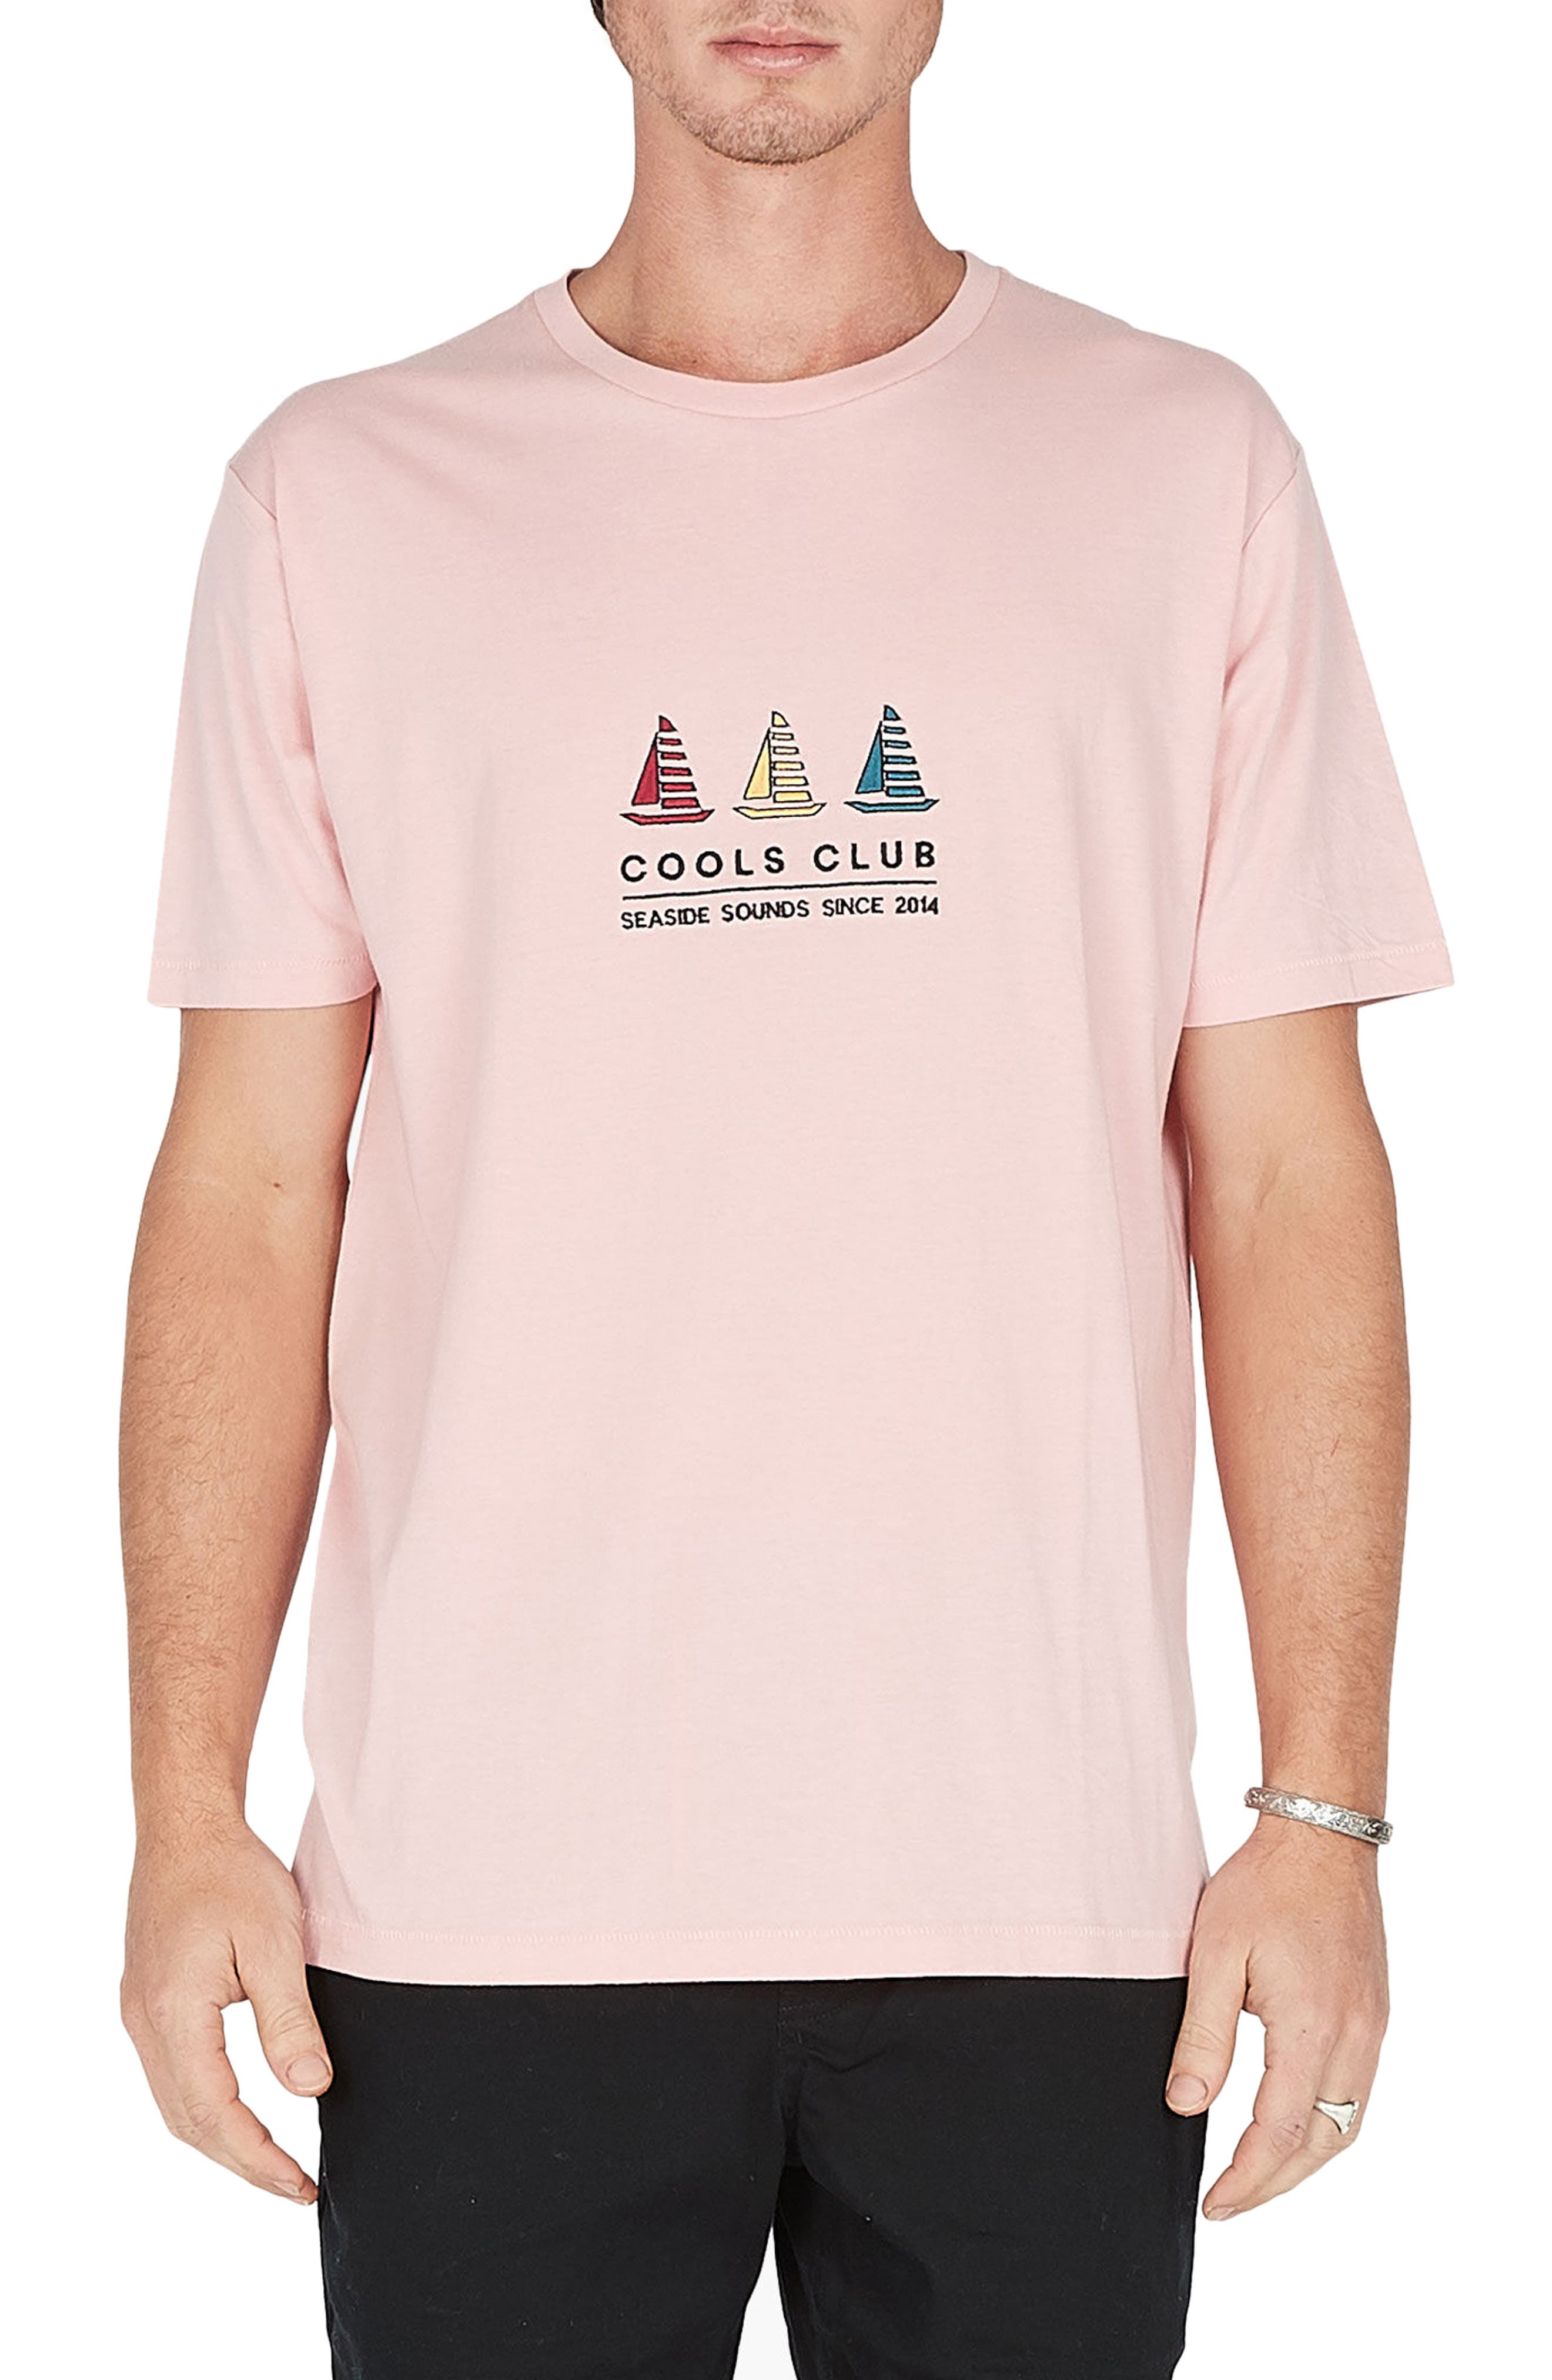 Embroidered Cools Club T-Shirt,                             Main thumbnail 1, color,                             680